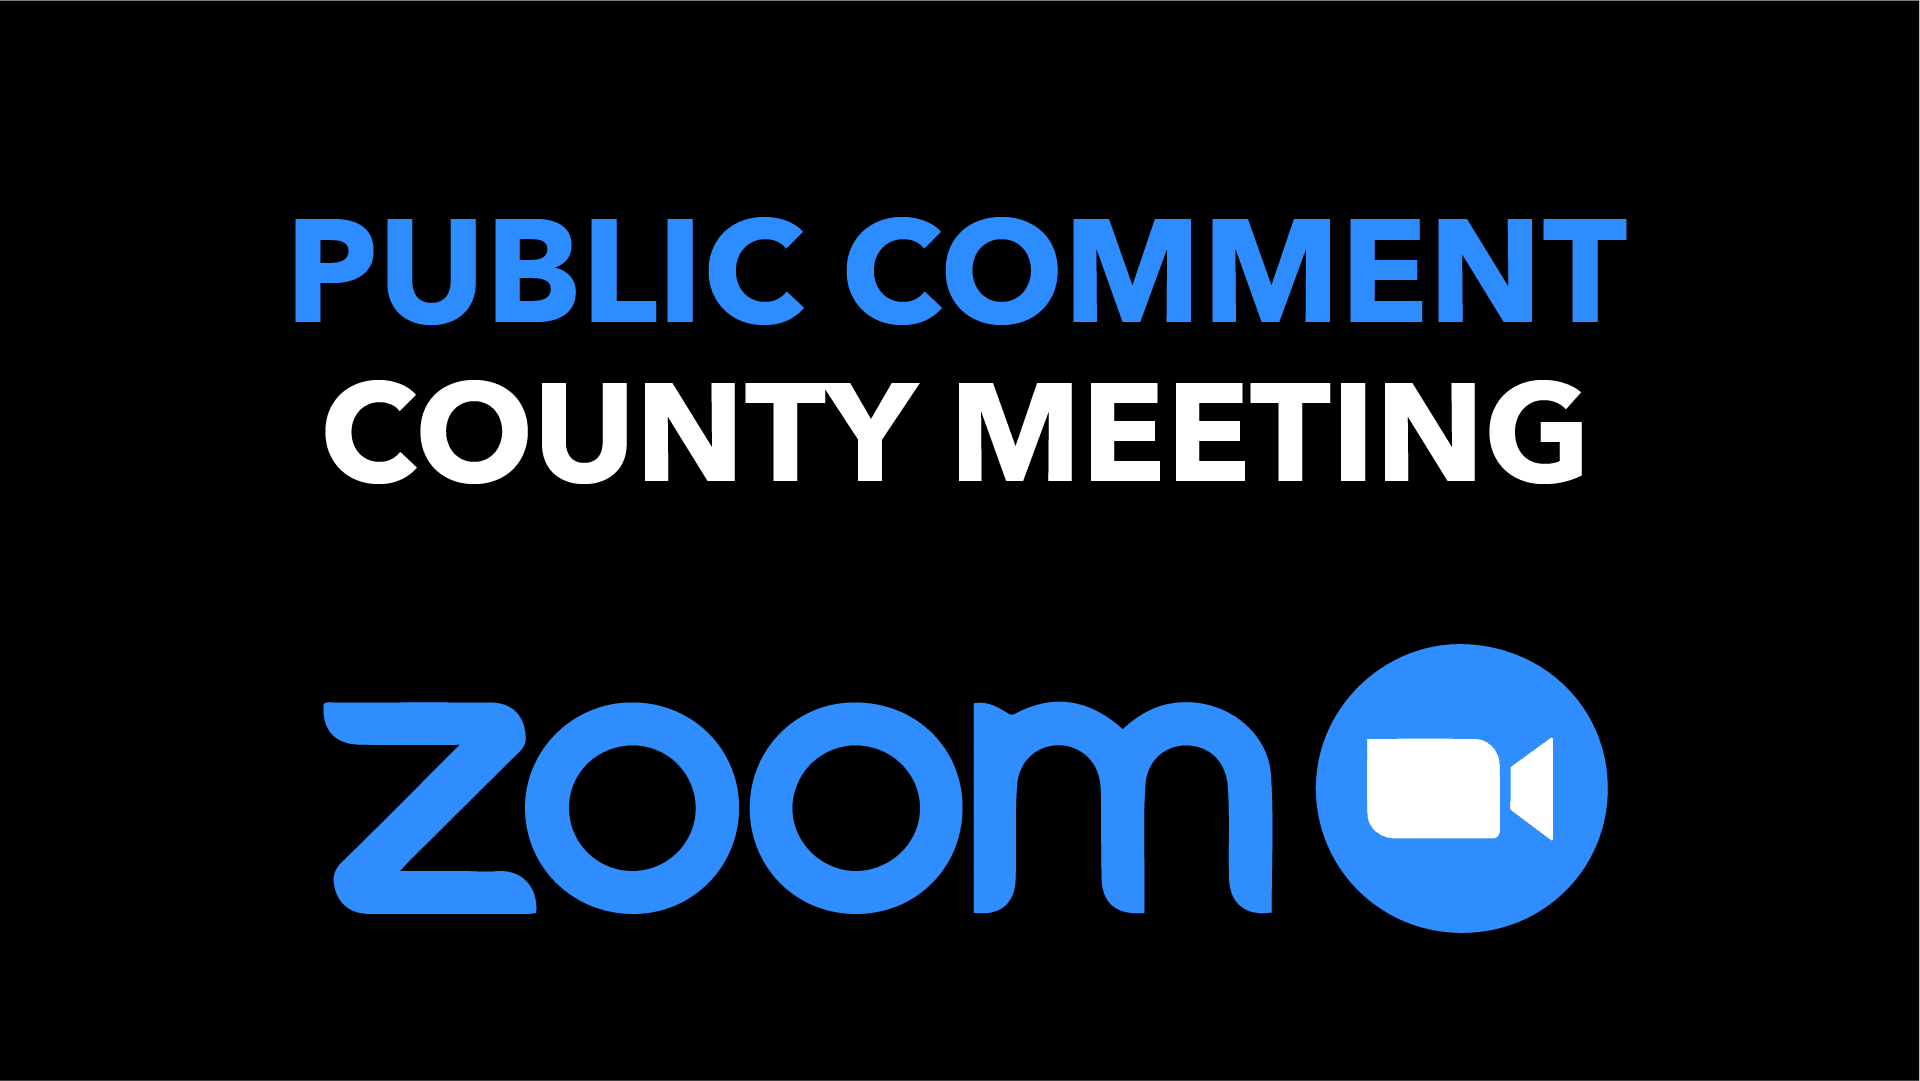 PUBLIC COMMENT COUNTY MEETING